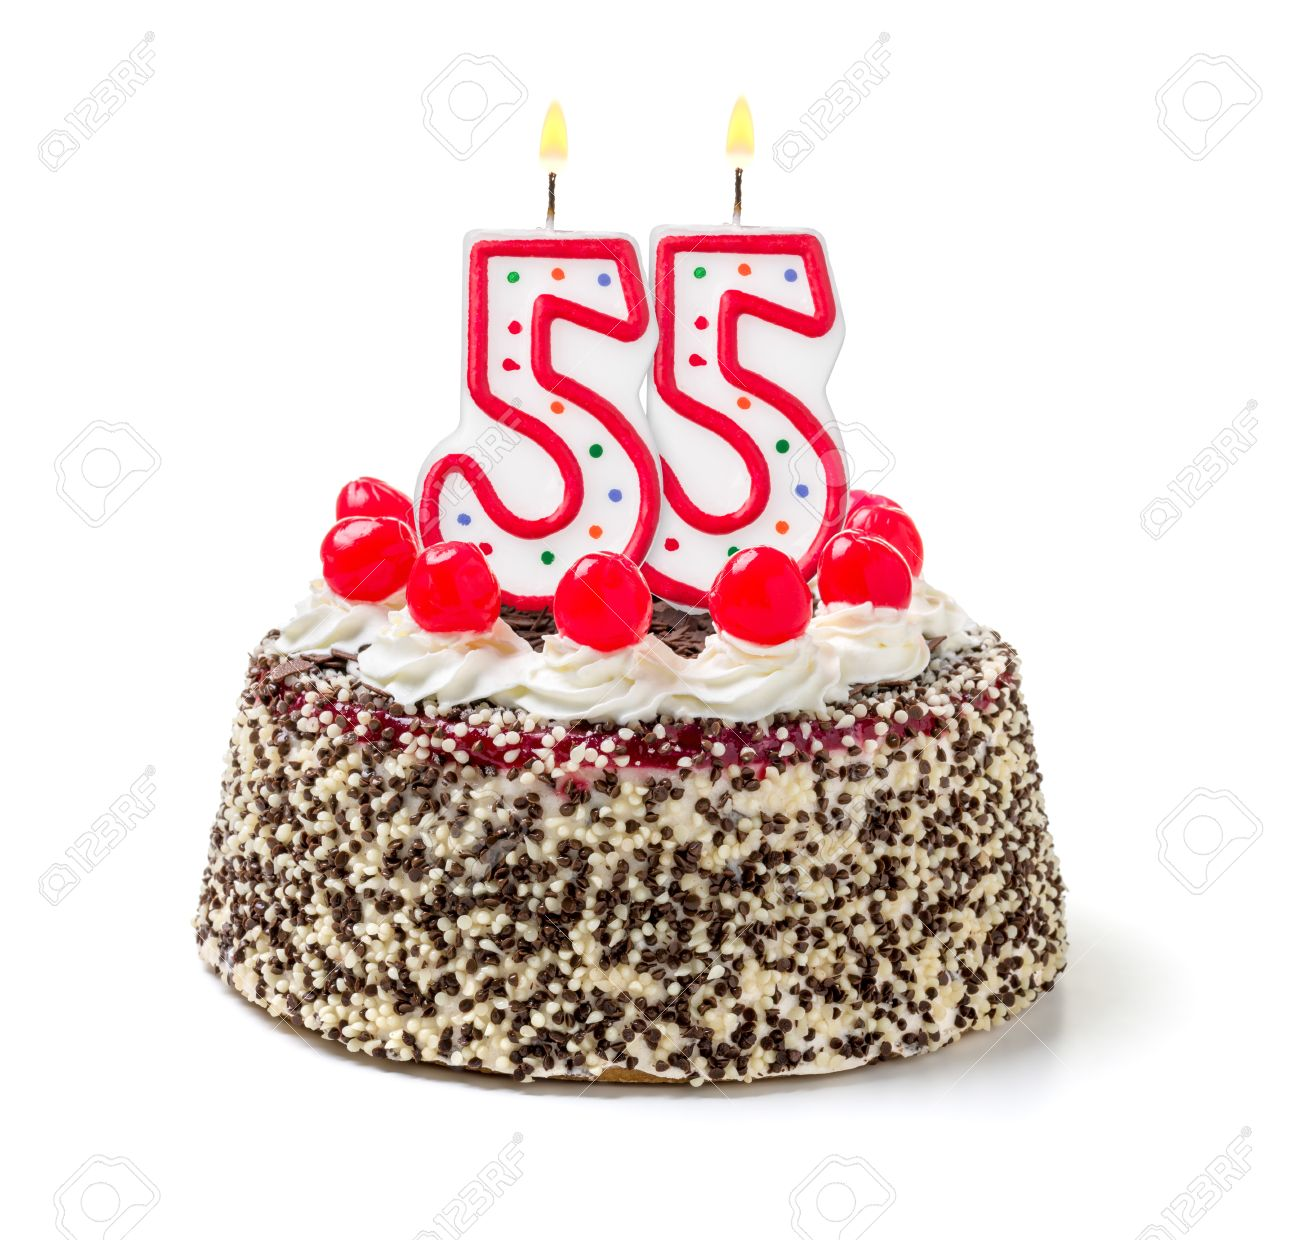 Birthday Cake With Burning Candle Number 55 Stock Photo, Picture And ...